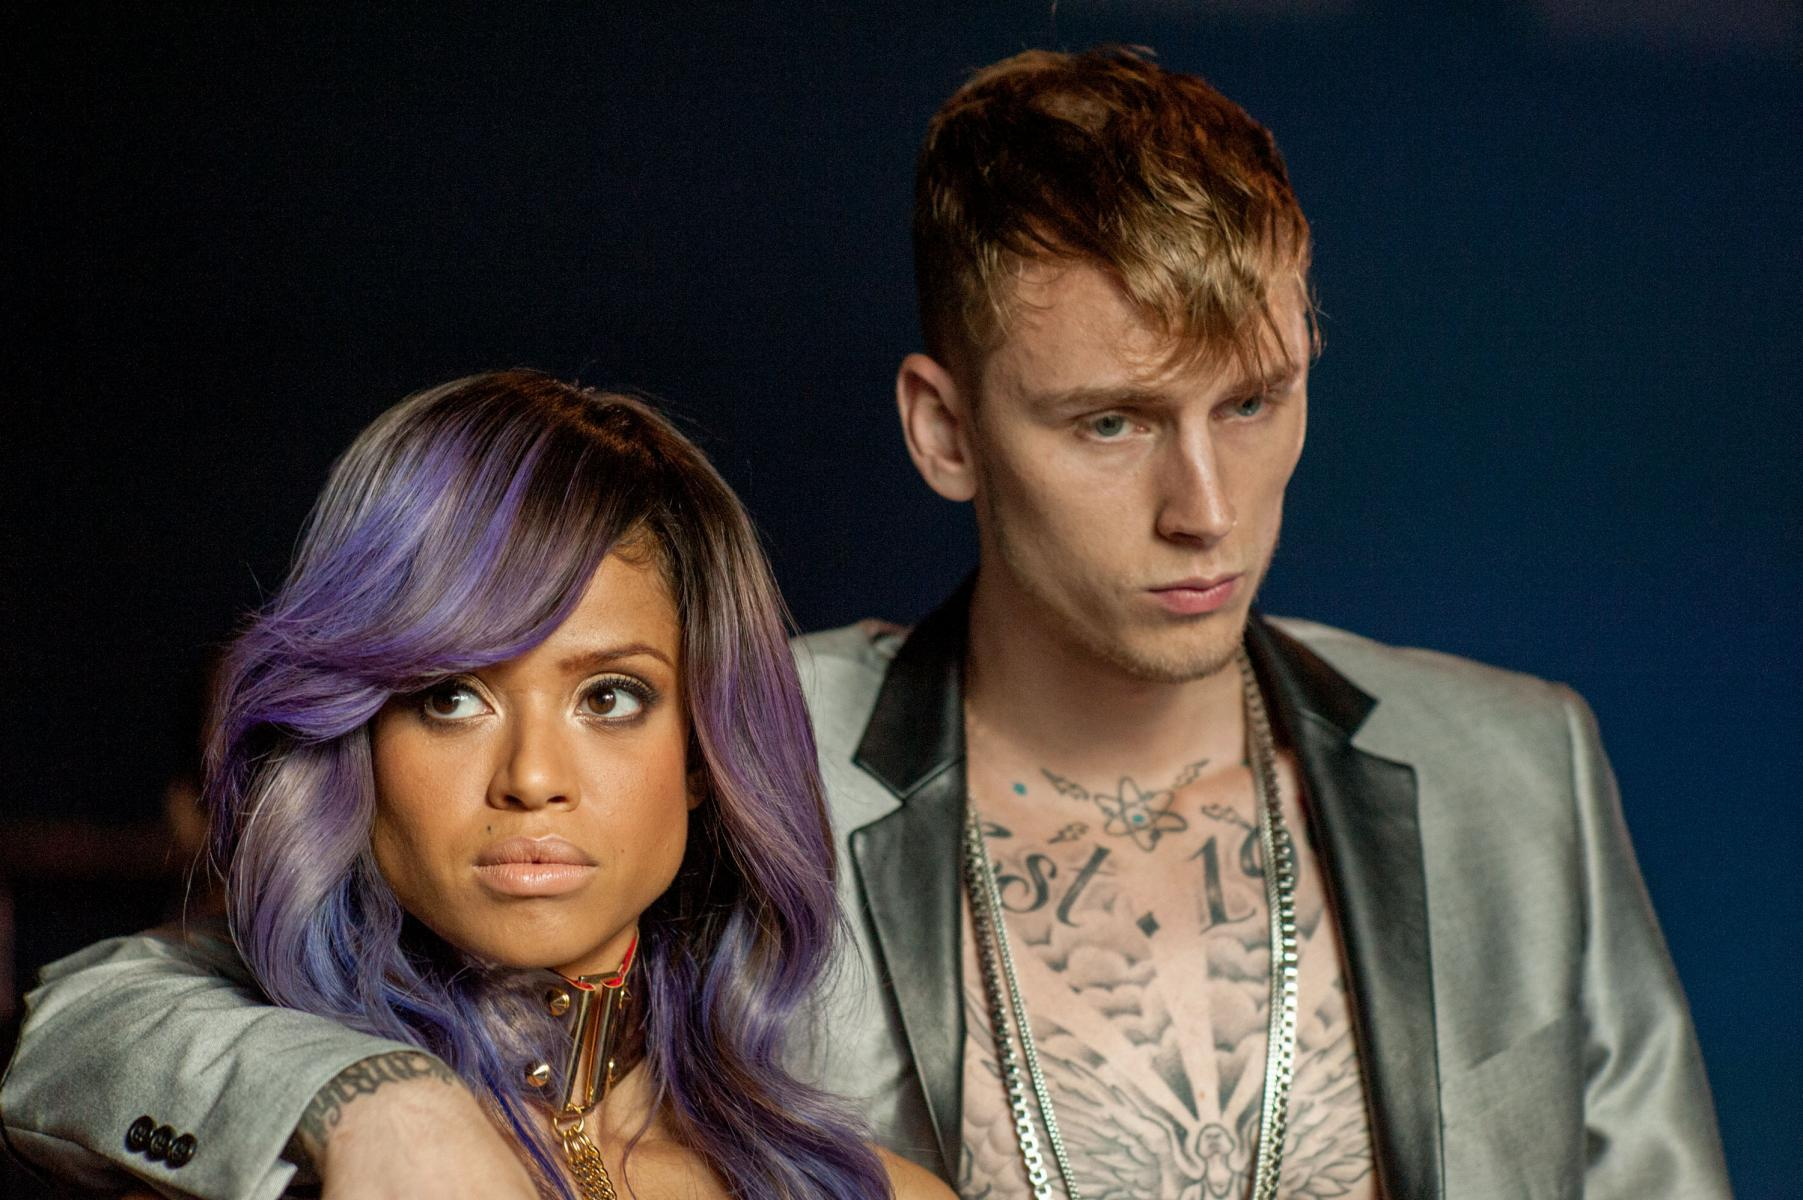 Image gallery for Beyond the Lights - FilmAffinity